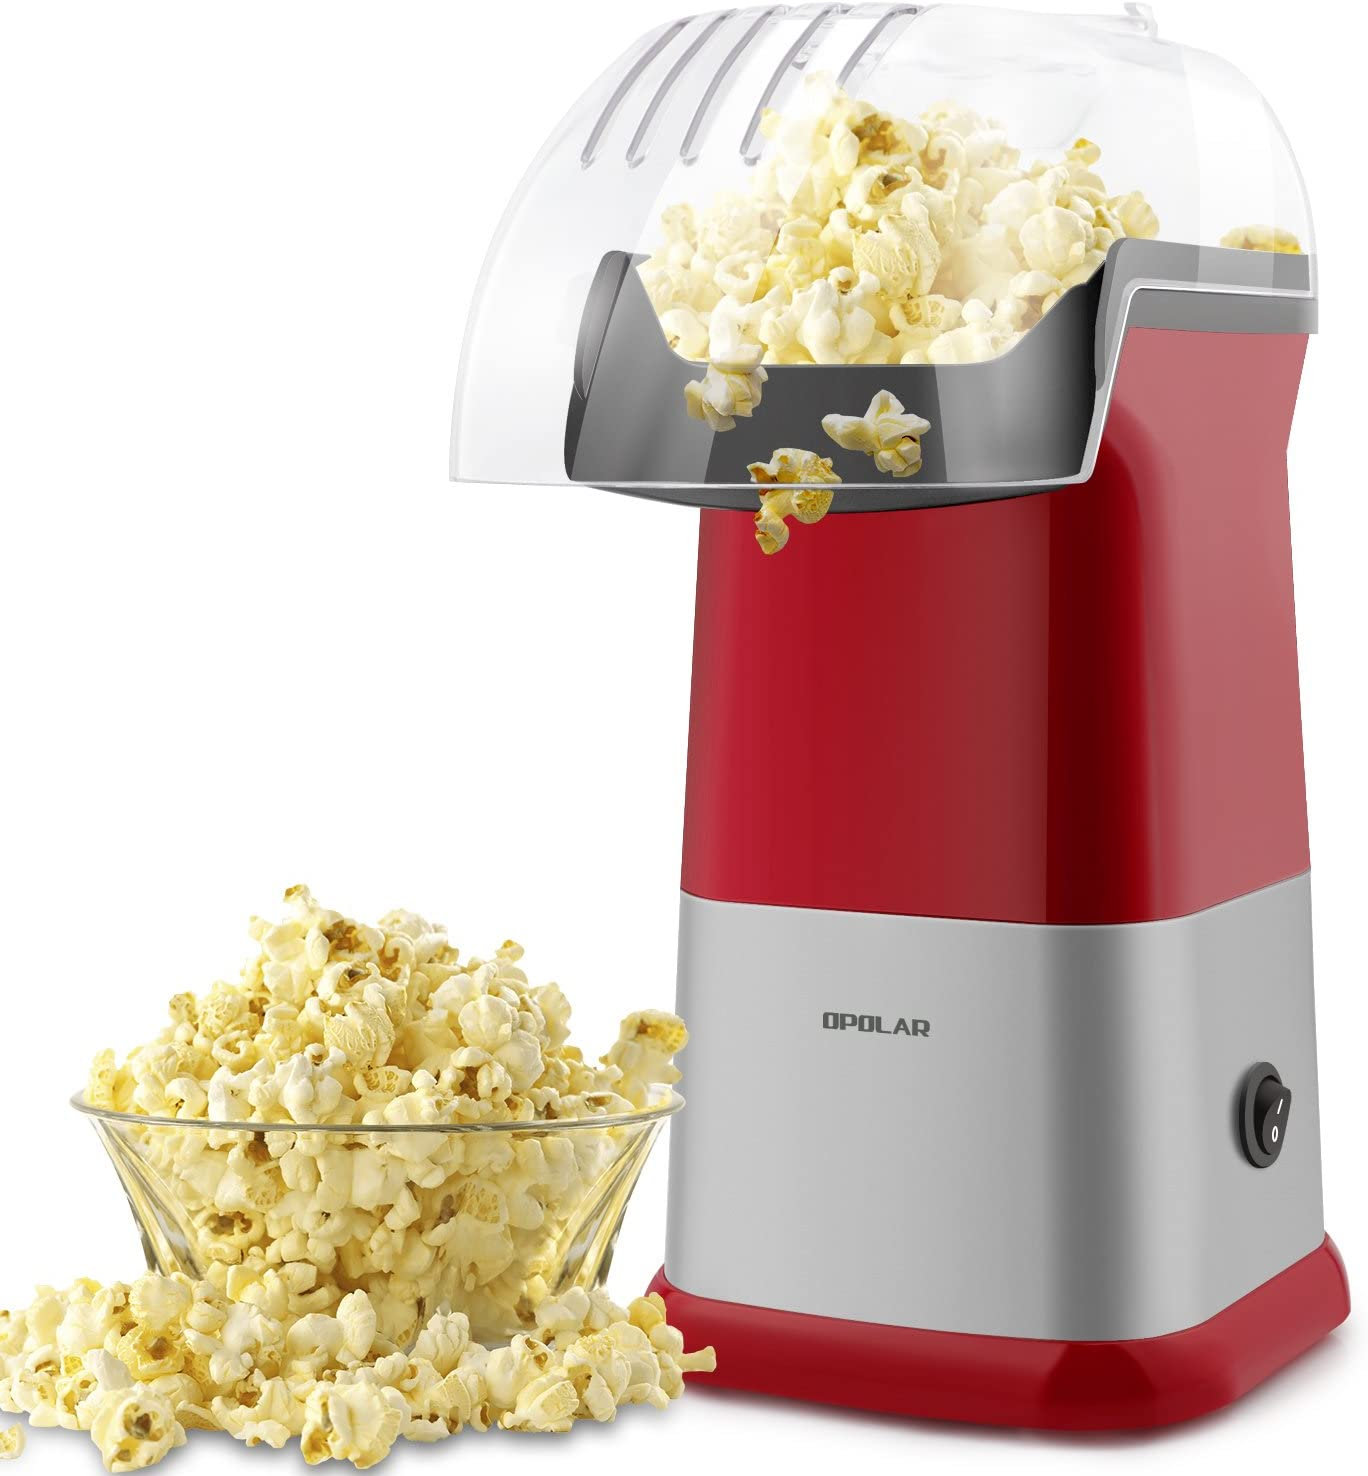 Hot Air Popcorn Poppers for Home, 1200W Popcorn Maker Machine for Healthy Snack, No Oil Needed (Red)